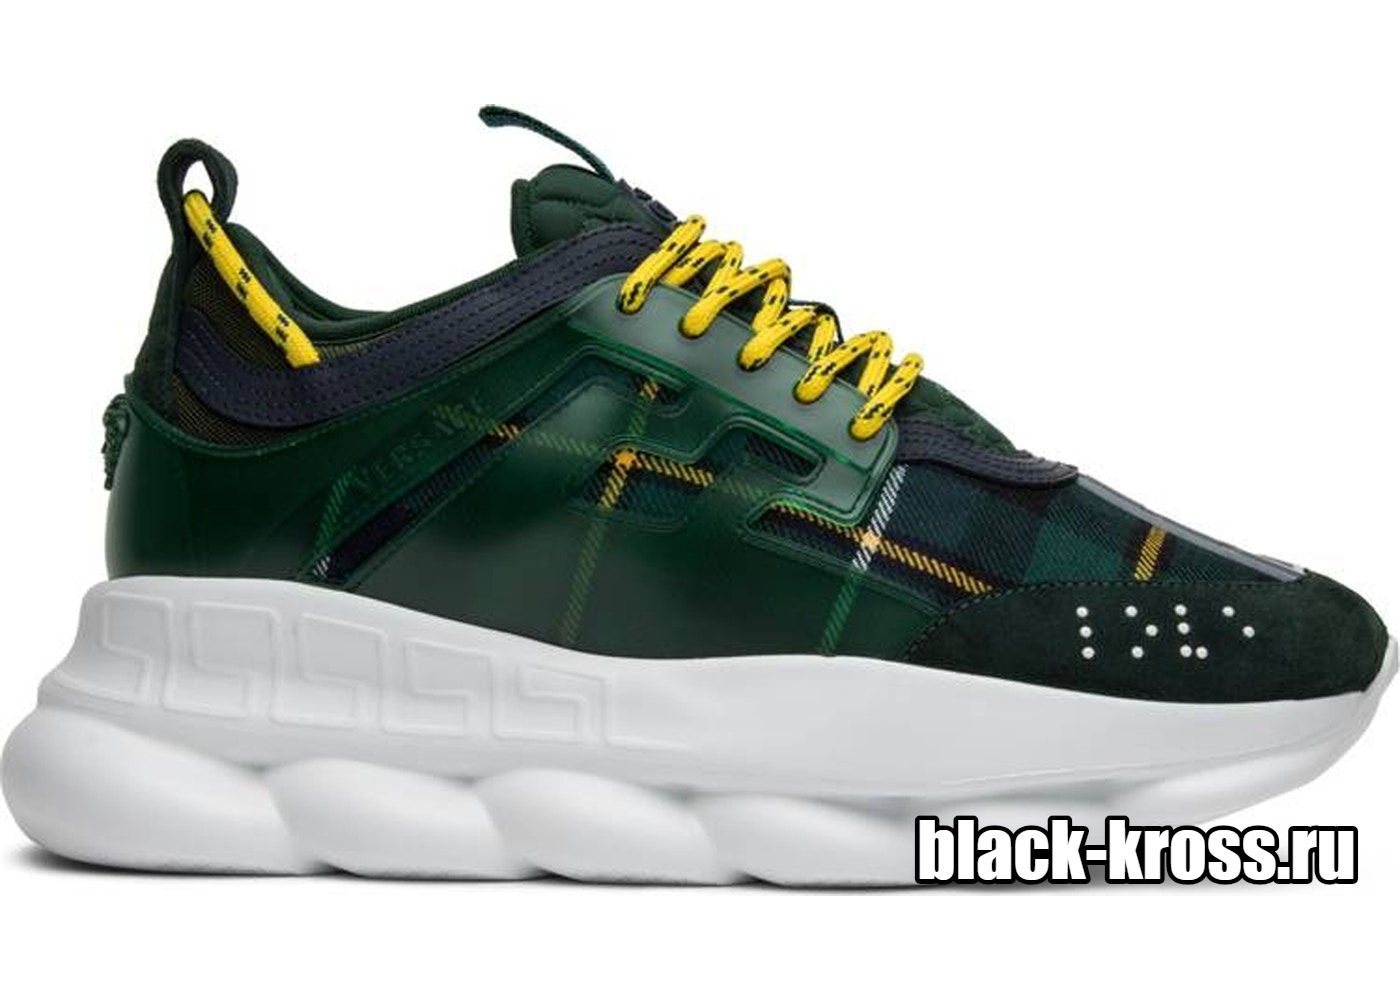 Versace Chain Reaction 2 Green (36-45)